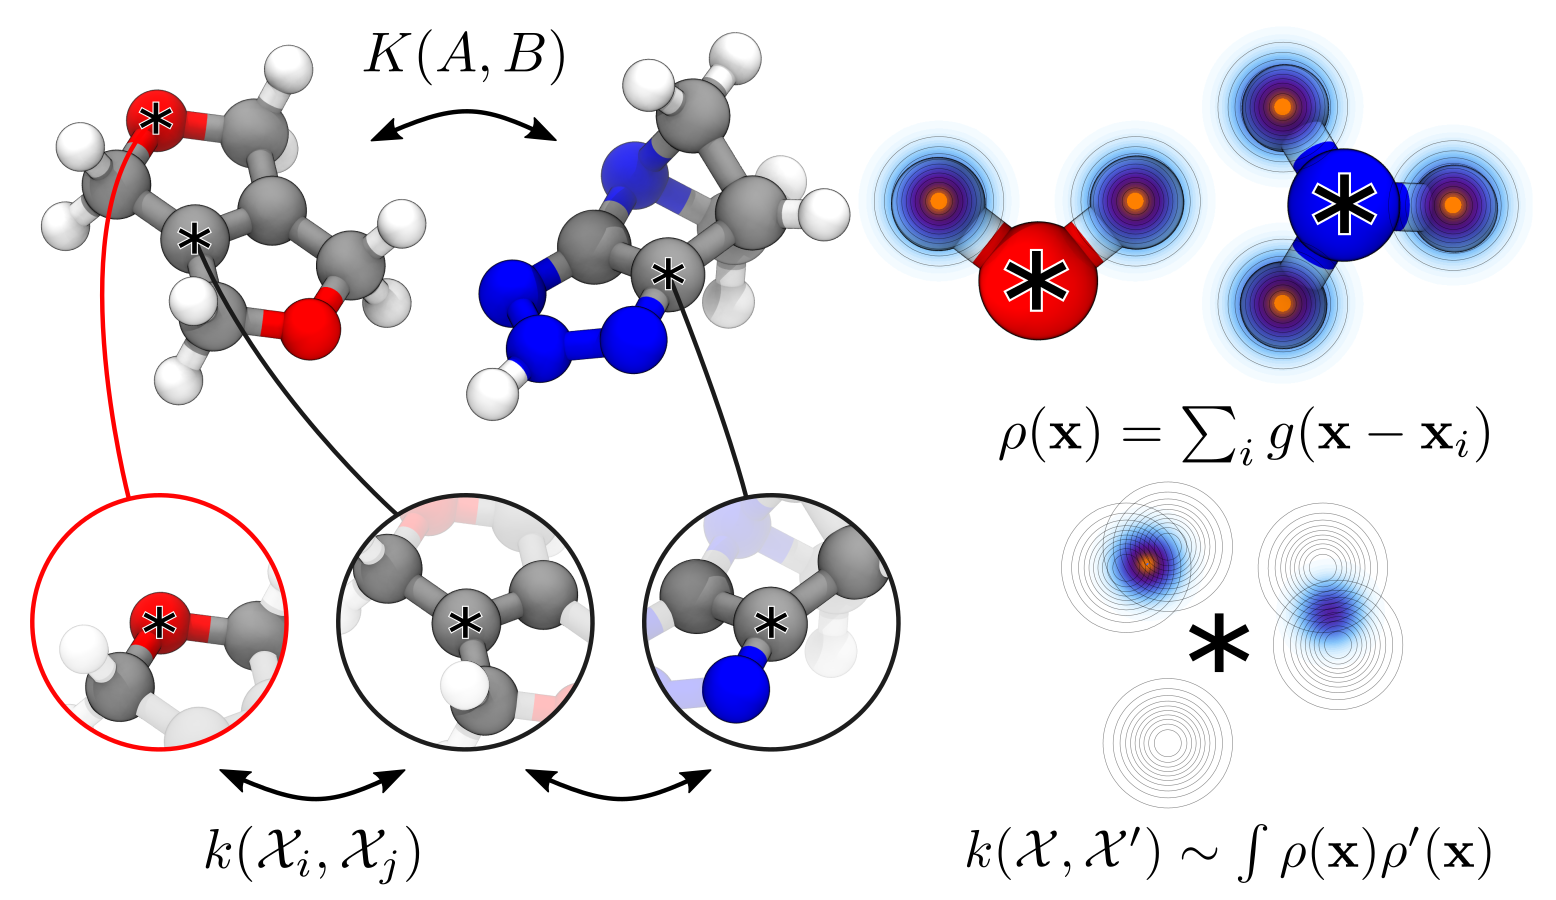 A kernel function to compare solids and molecules can be built based on density overlap kernels between atom-centered environments. Chemical variability is accounted for by building separate neighbour densities for each distinct element(see Ref.